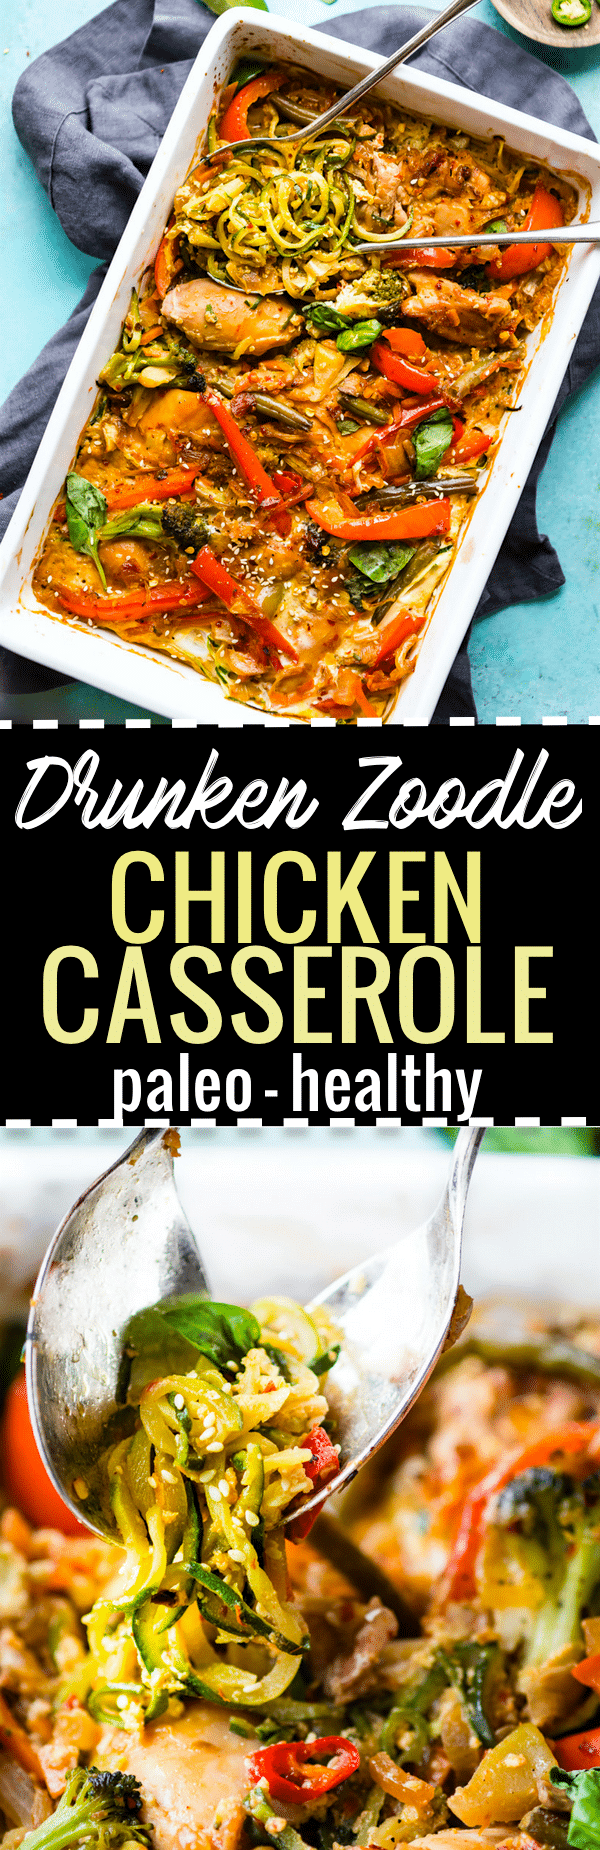 Paleo Drunken Zoodle Chicken Casserole takes a spin on the original Pad kee mao Asian stir fry and puts in casserole form. Noodle Zoodle Chicken Casserole with tons of flavor, Thai spices, and simple healthy ingredients! Light and delicious.  https://www.cottercrunch.com/